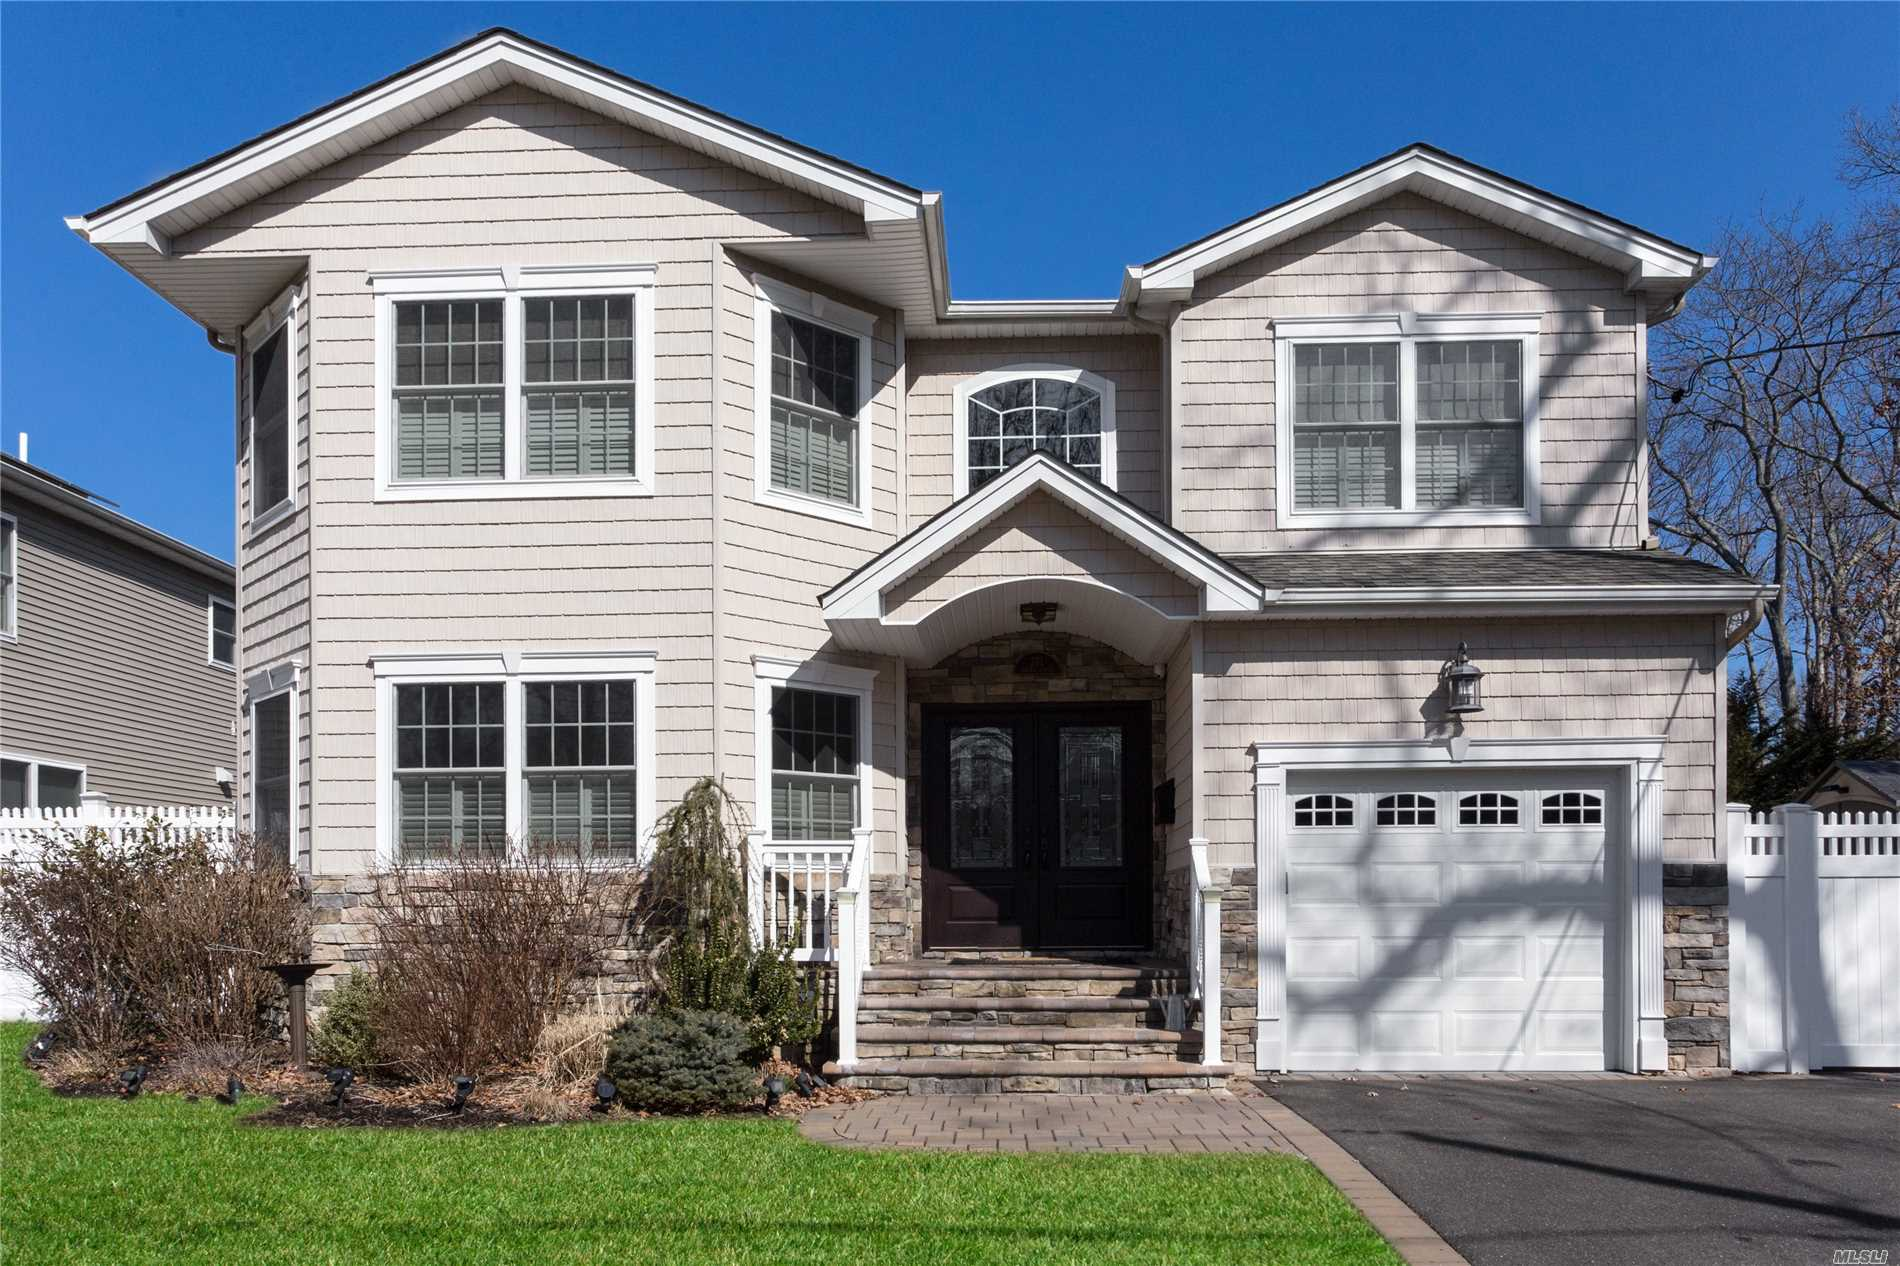 Better than new! 2014 4 bedroom, 2.5 bath stunning side hall Colonial with many upgrades located in Parkside Estates. Outdoor kitchen, hardscape lighting, premium granite and tile, Plantation shutters,  too much to list. Tax grievance filed. A MUST SEE!